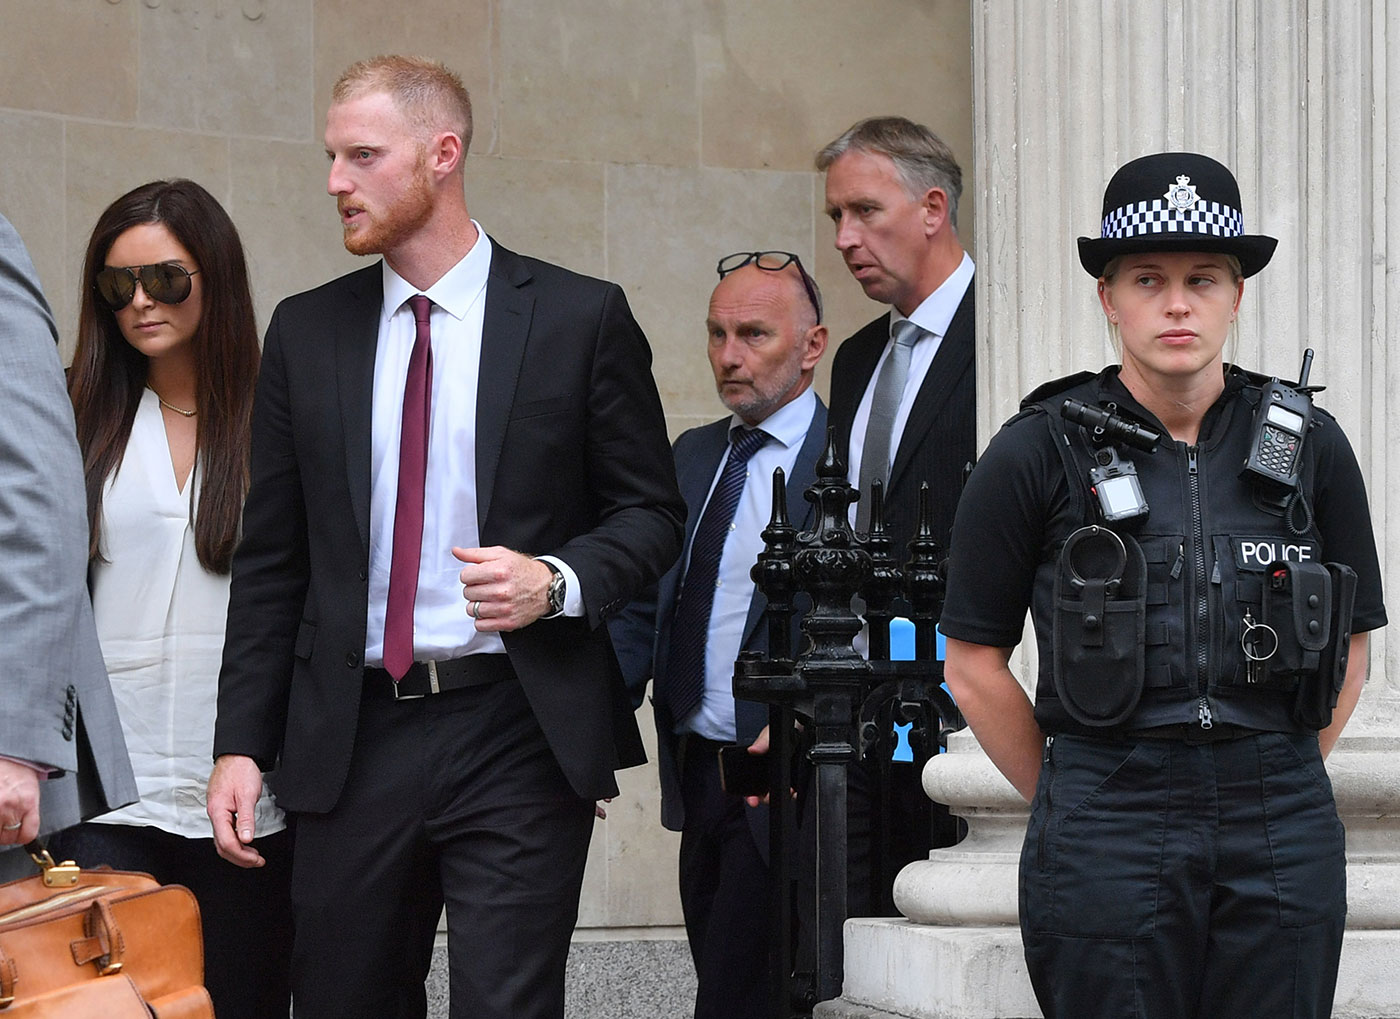 England cricket star Ben Stokes found not guilty of affray